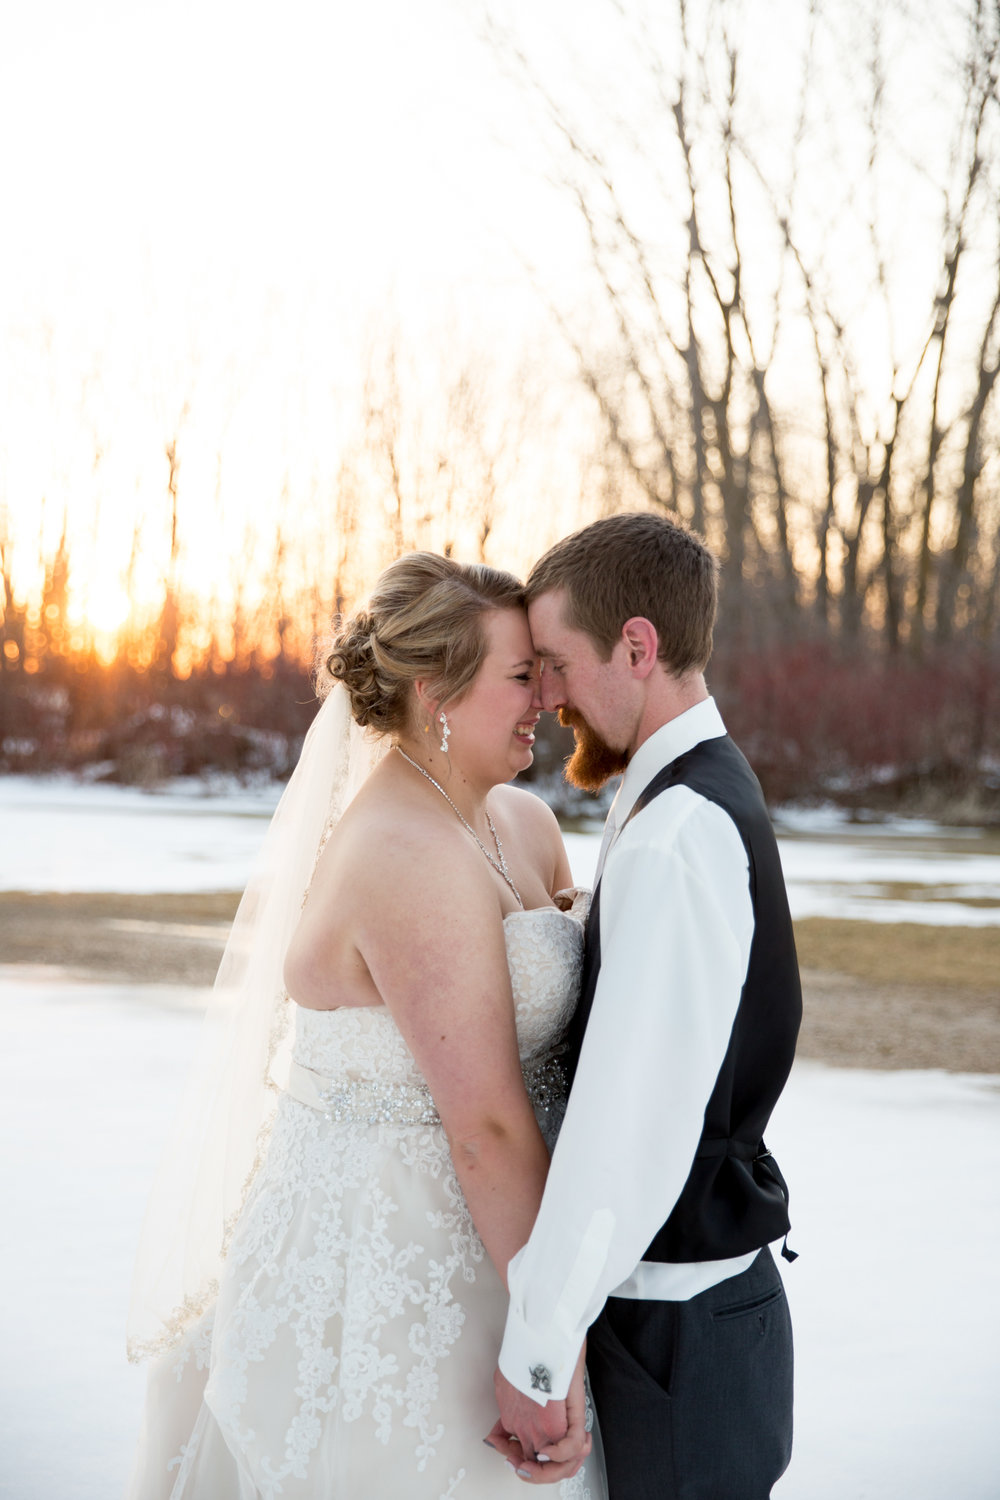 Cobblestone Creek Wedding in Brillion, Wisconsin - Whit Meza Photography